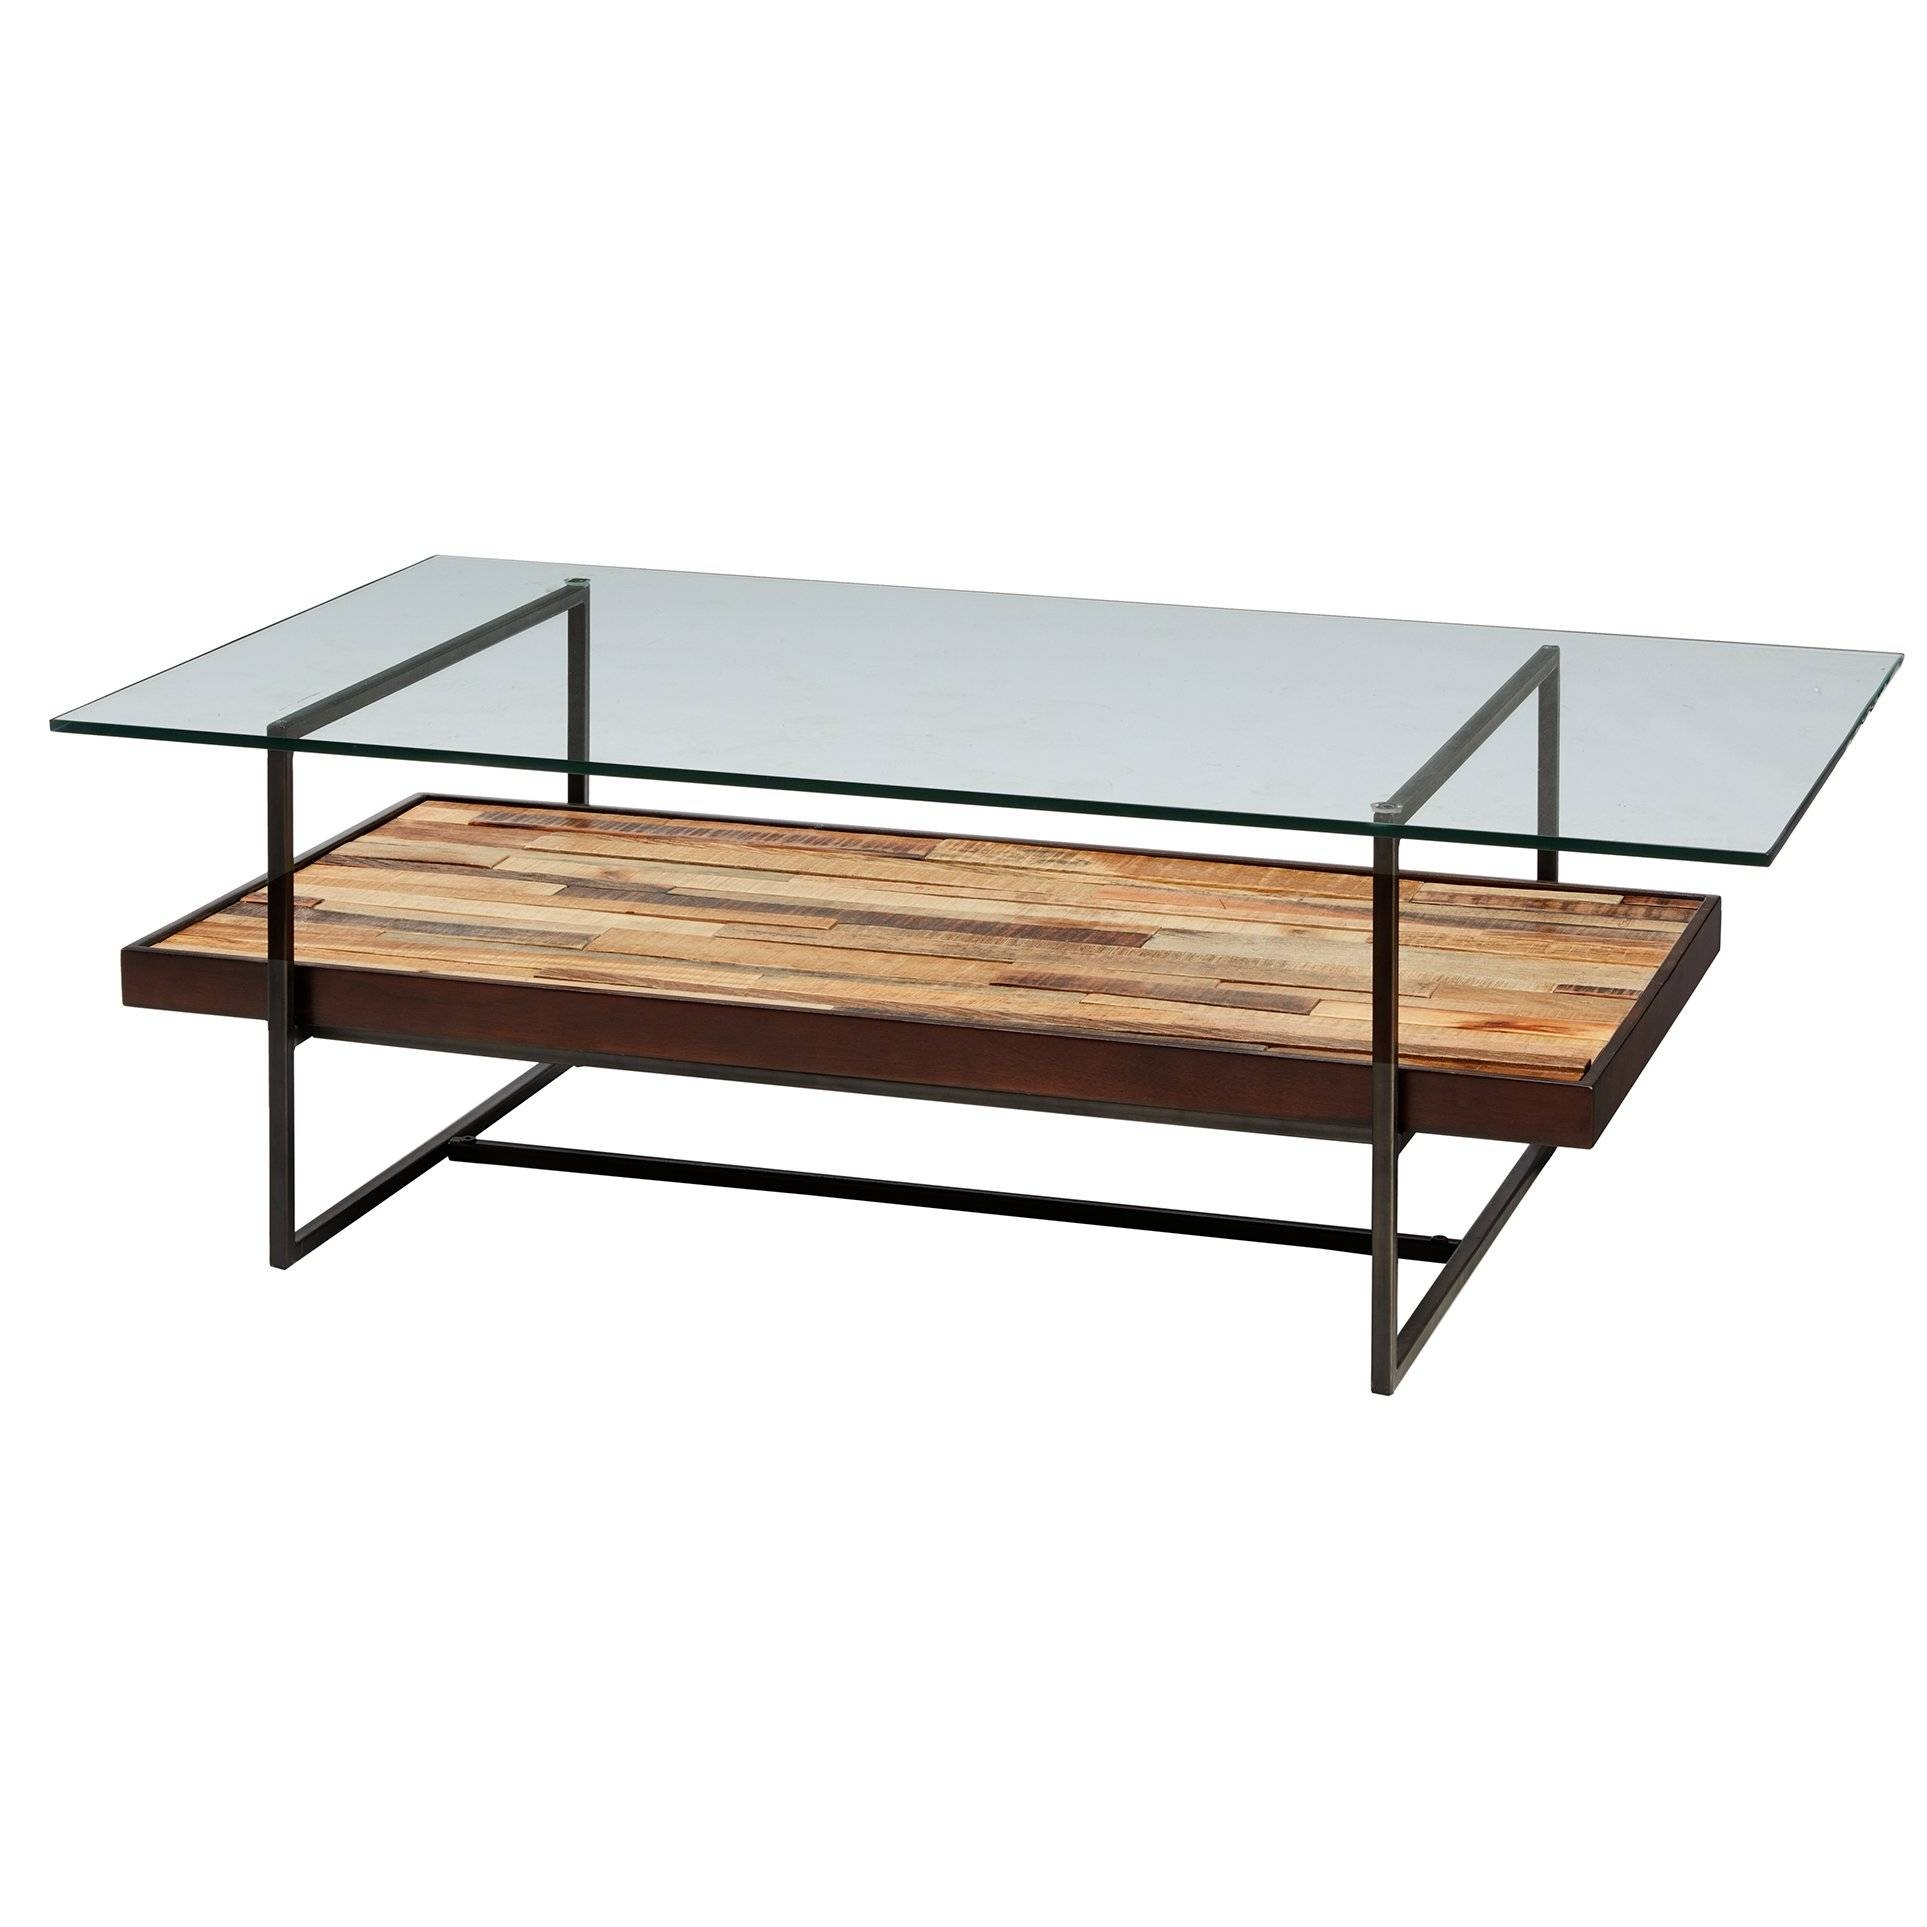 Wayfair Coffee Tables Hancock Trunk Table With Lift Top Throughout